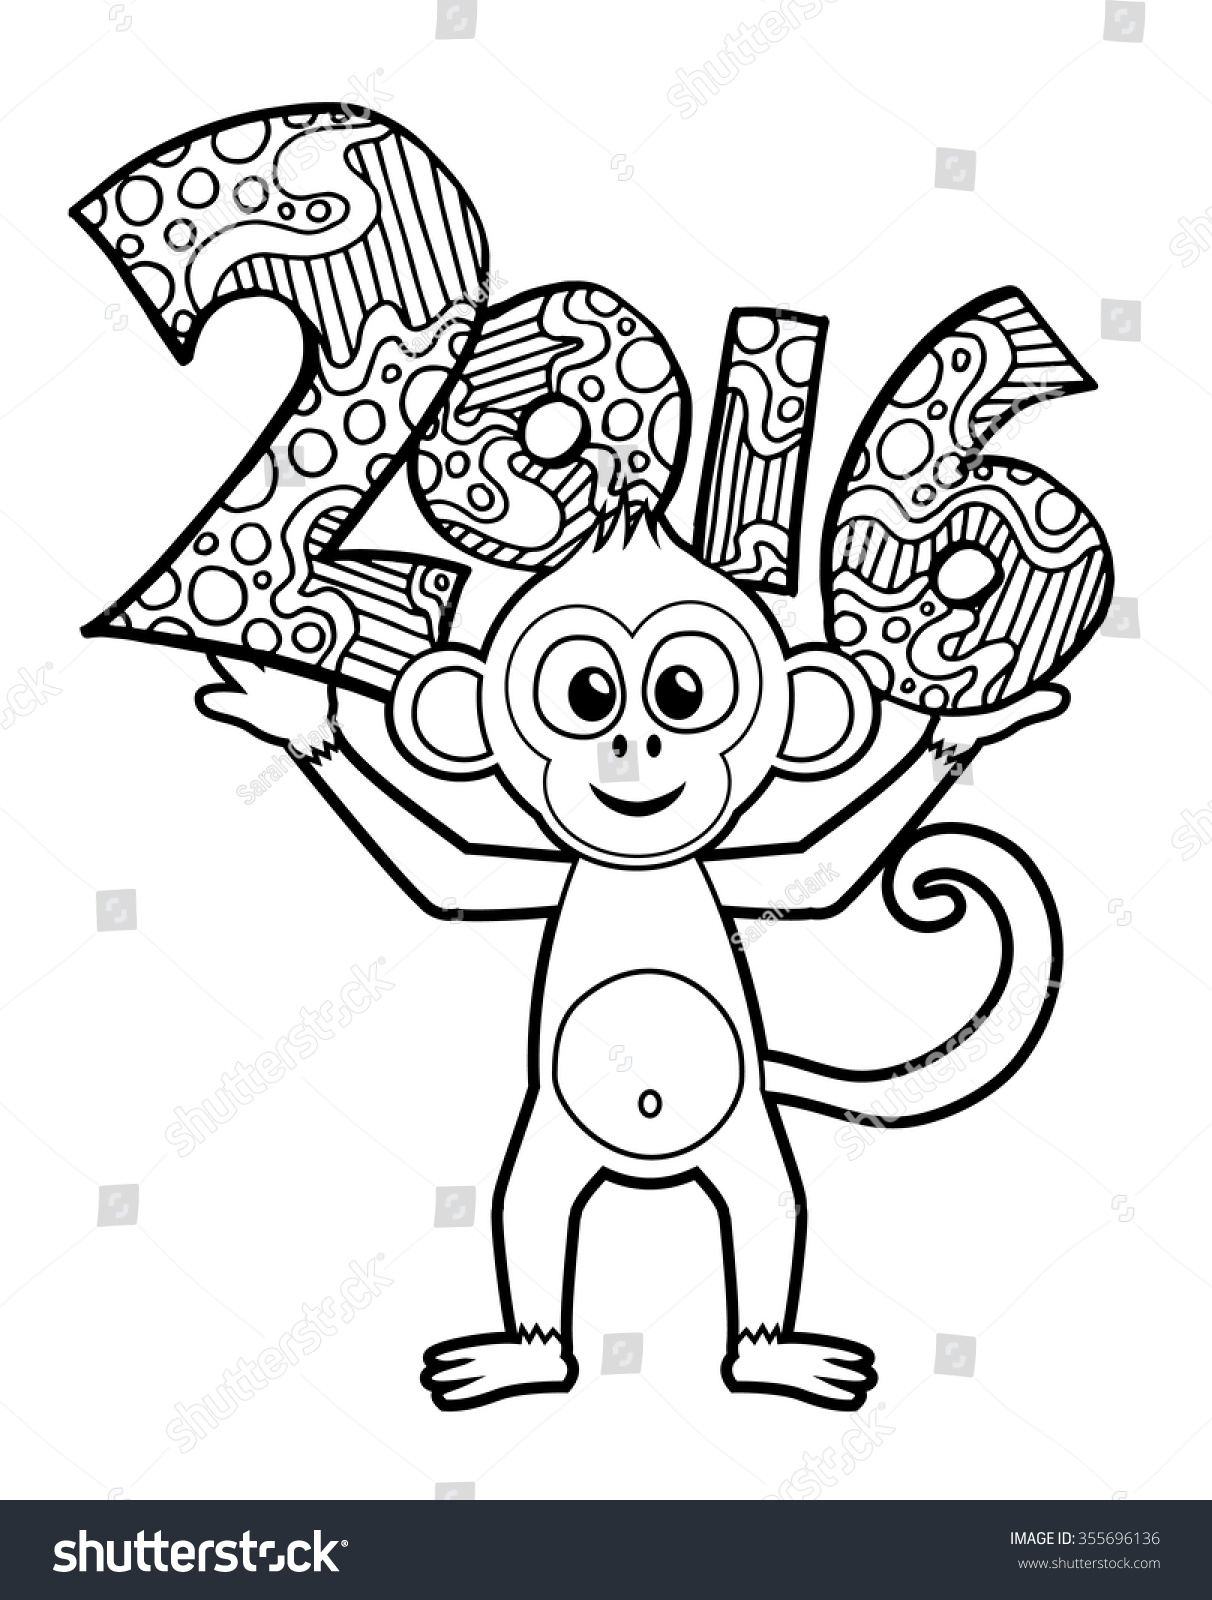 Preschool New Years Coloring Pages With Chinese Year